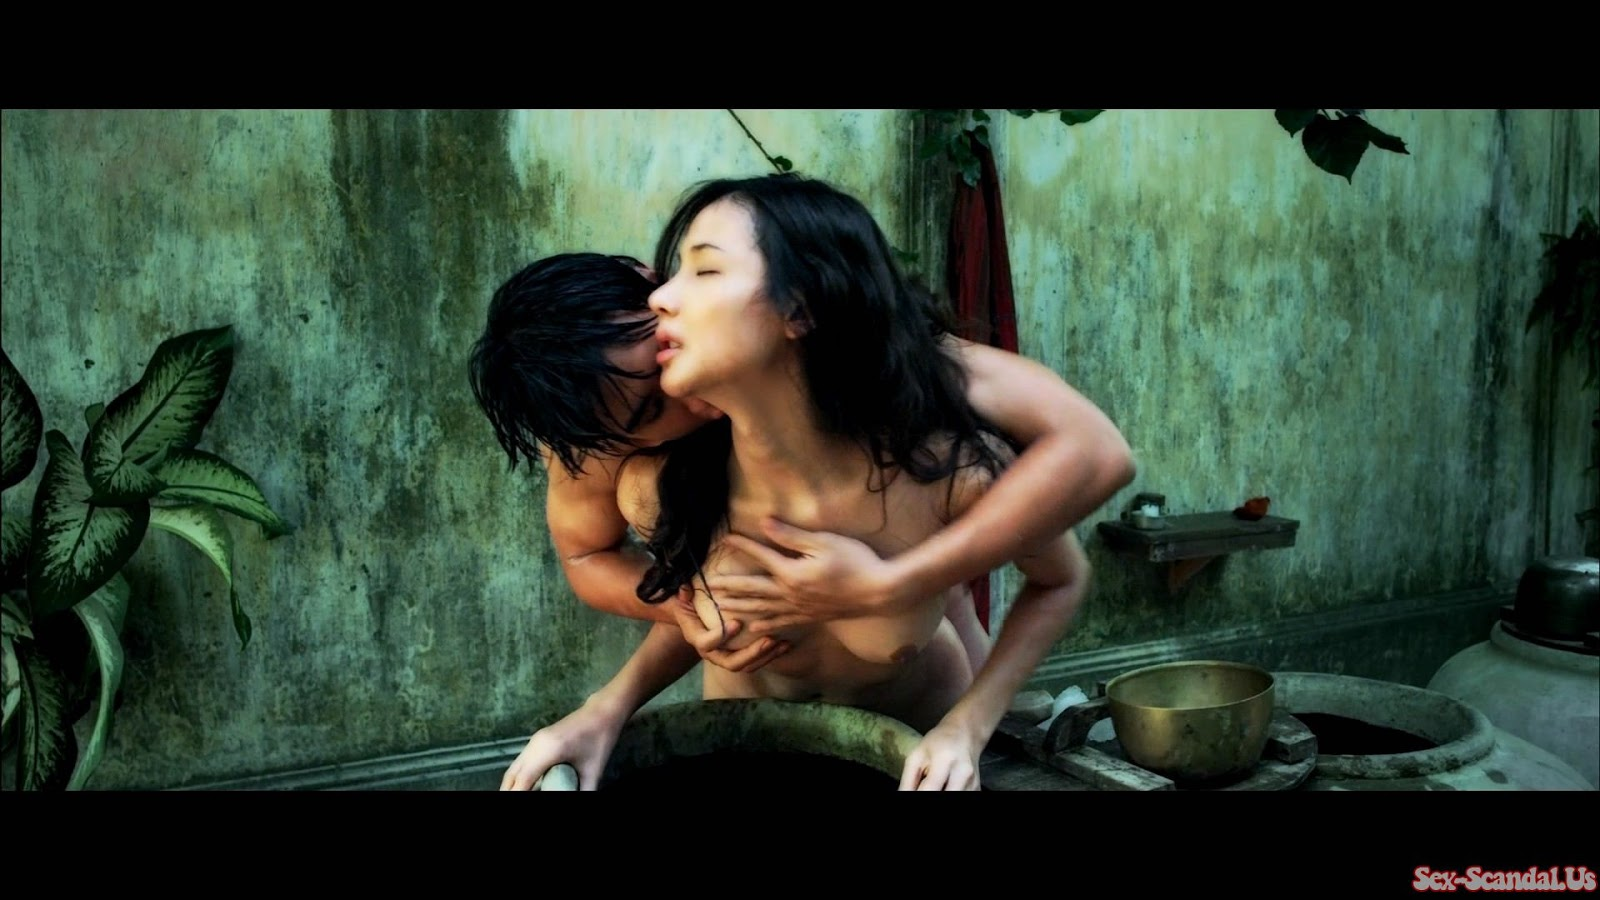 Pity, thai movie sex scene